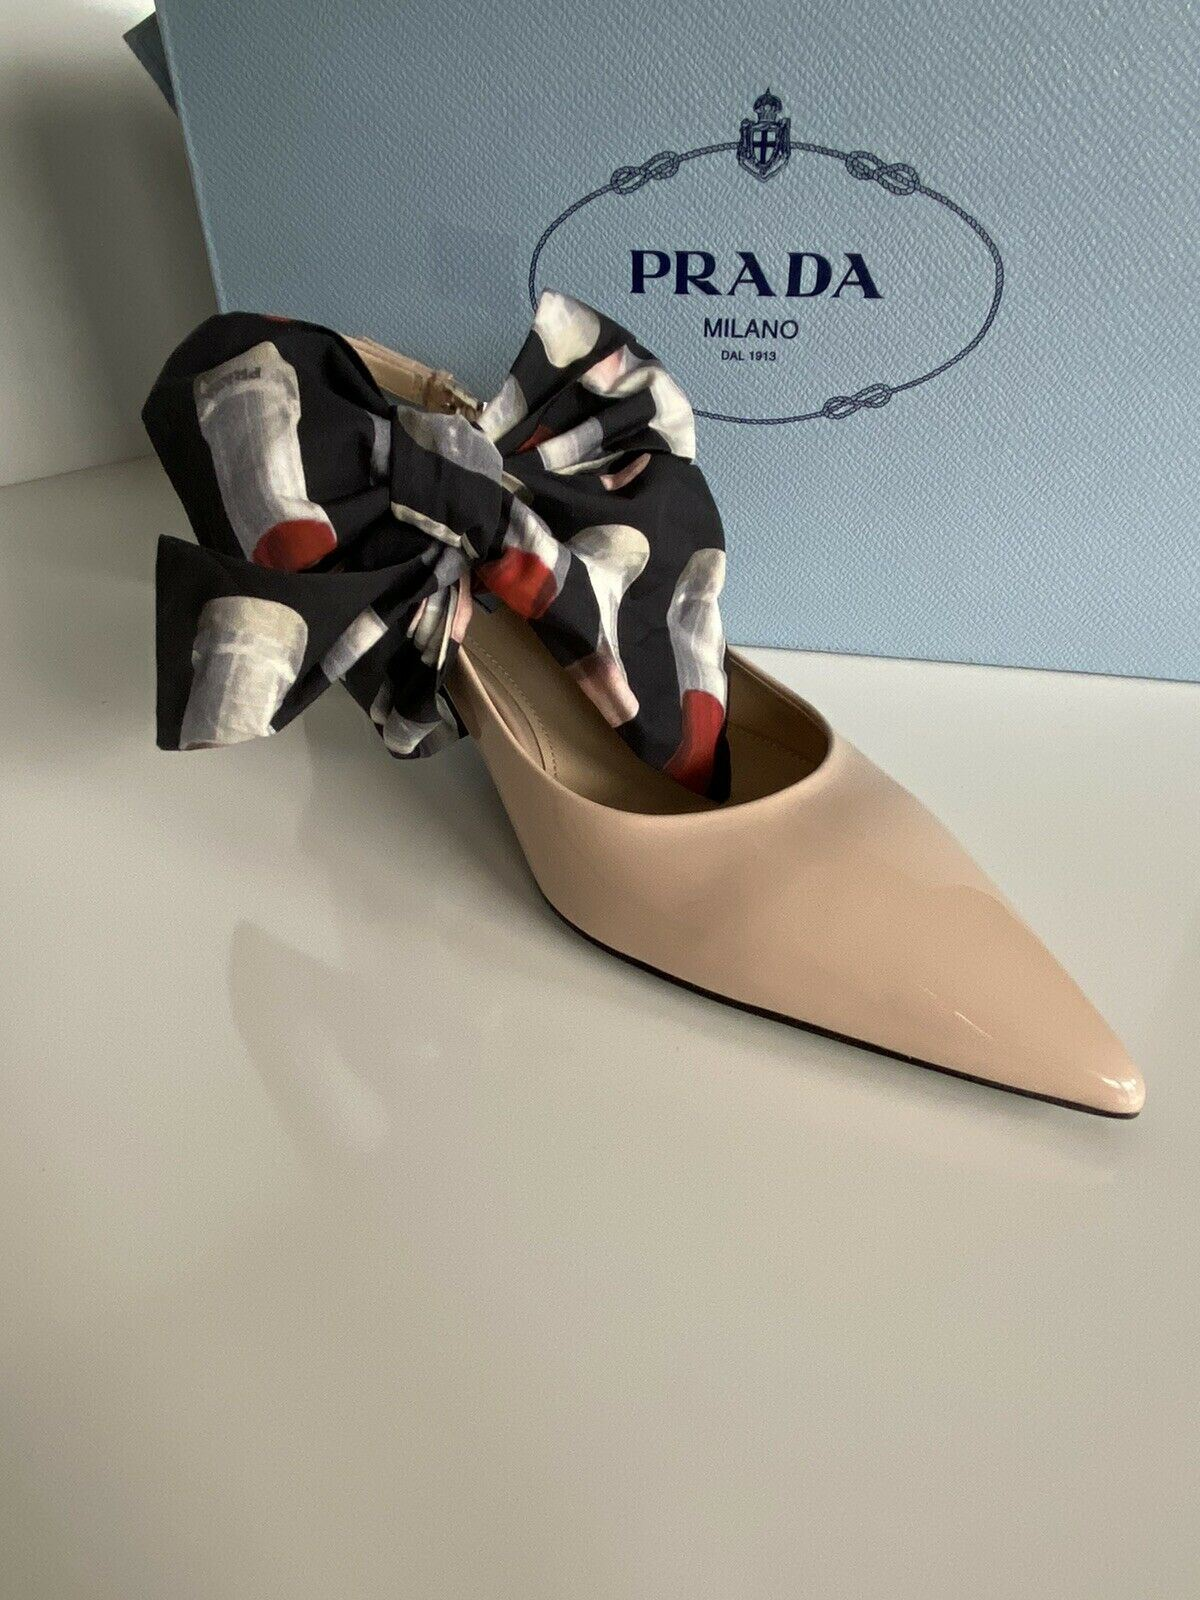 NIB Prada MILANO Women's Leather Beige Shoes 8 US (38 Eu) Italy 1I758I